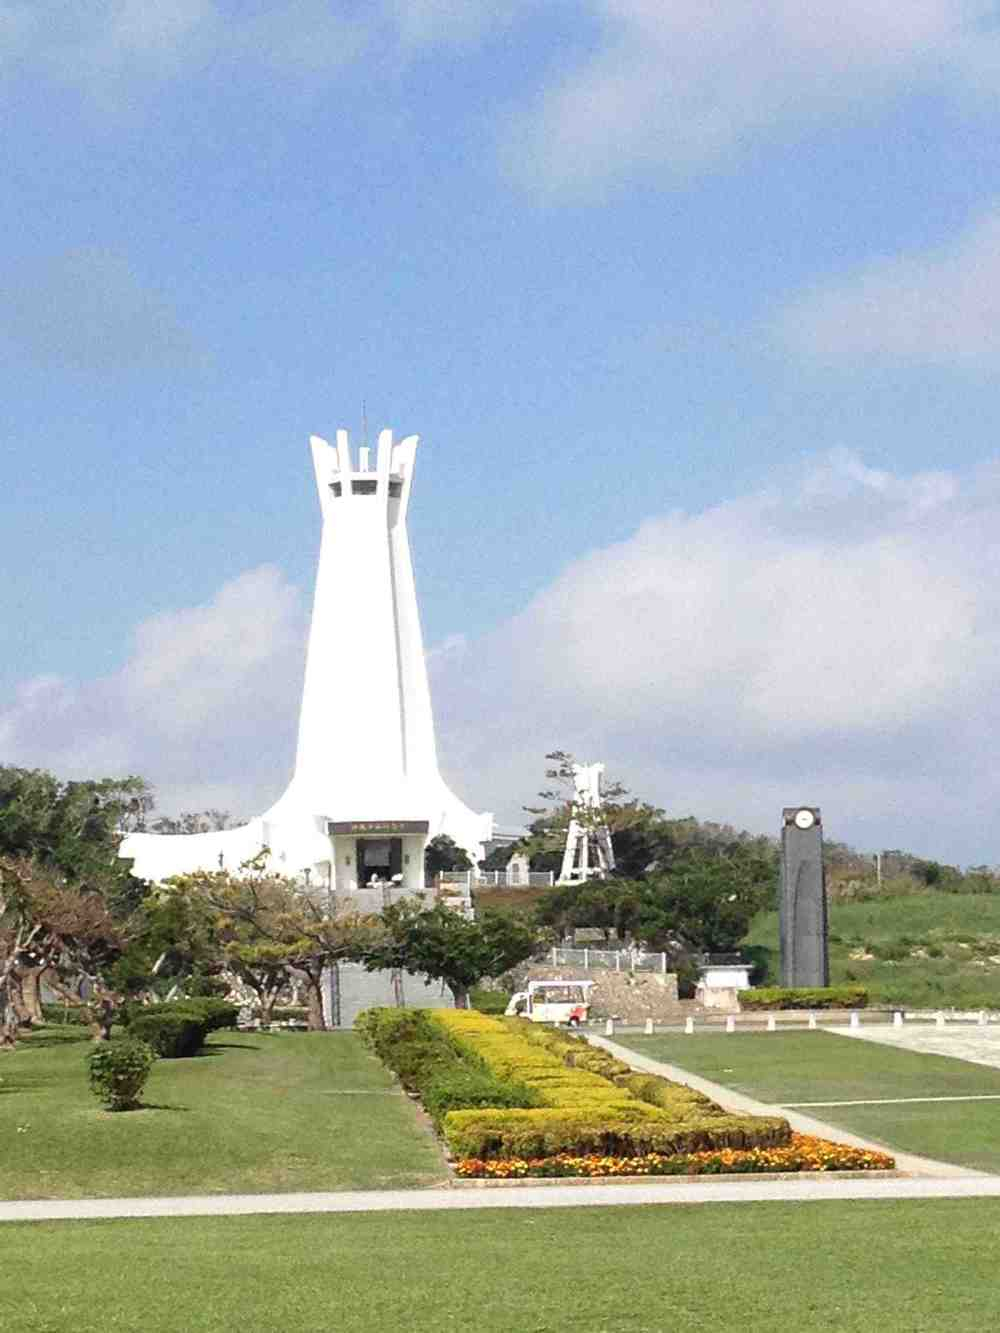 Okinawa Peace Memorial Tower